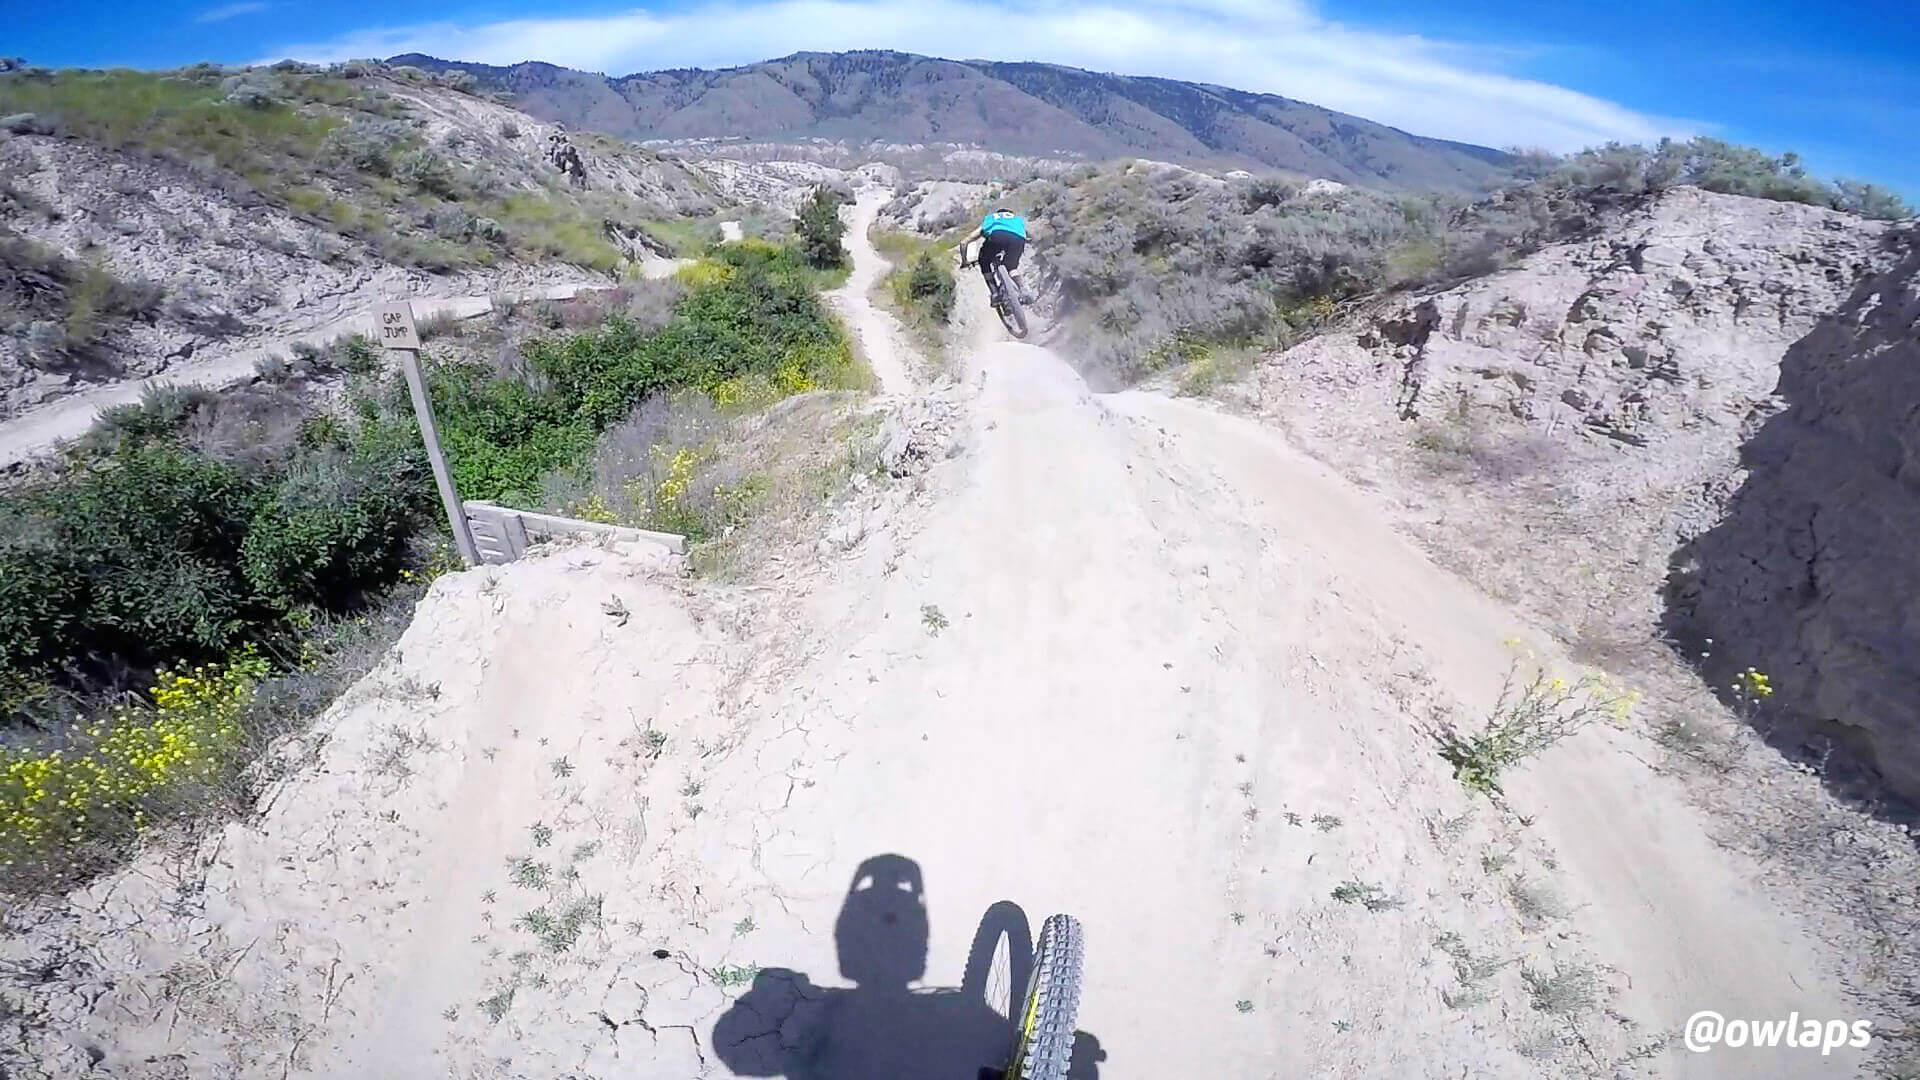 wrangler-kamloops-bike-ranch-canada-owlaps-HD-14